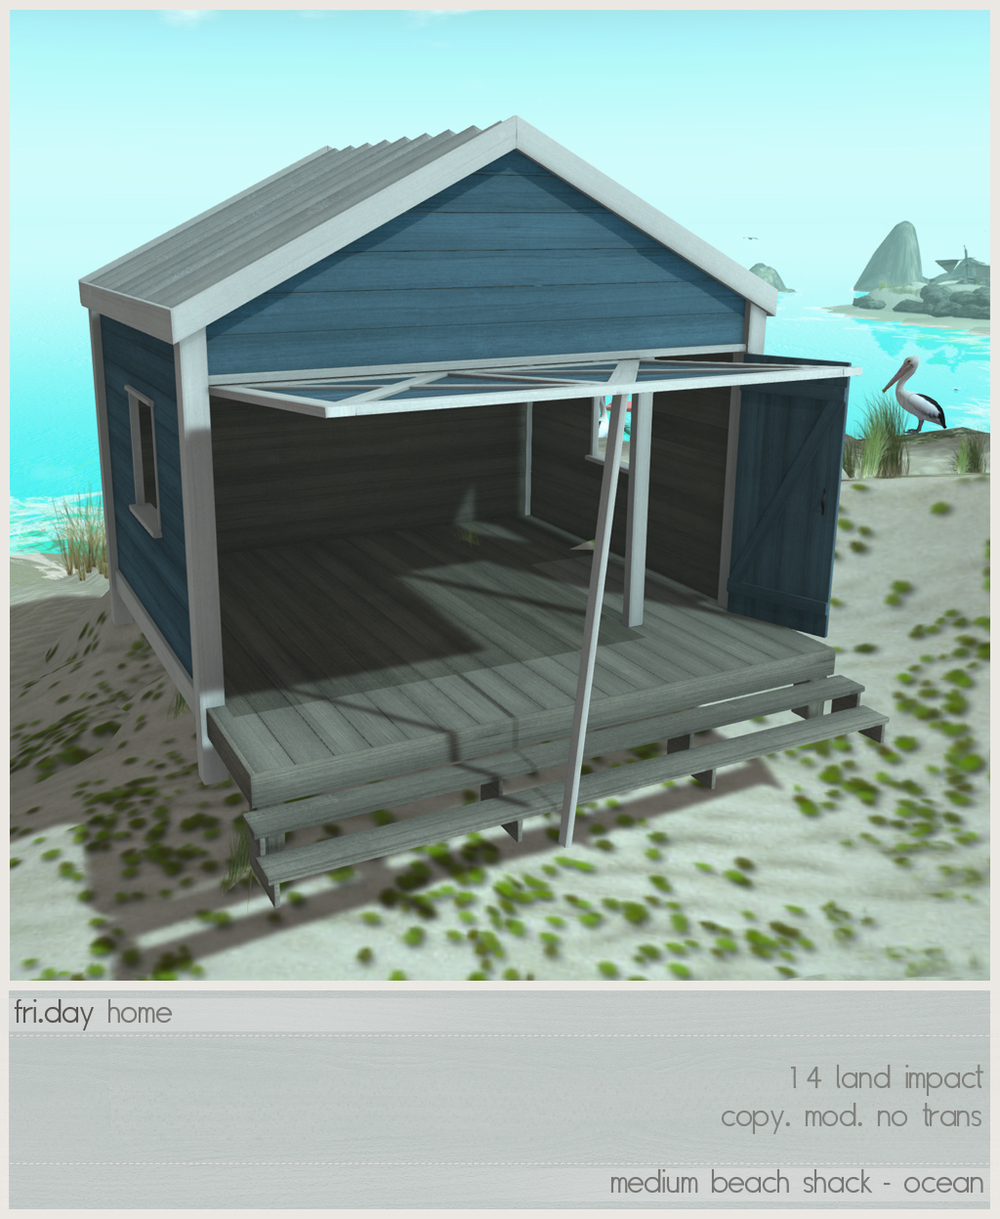 frihome - medium beach shack - ocean ad.jpg